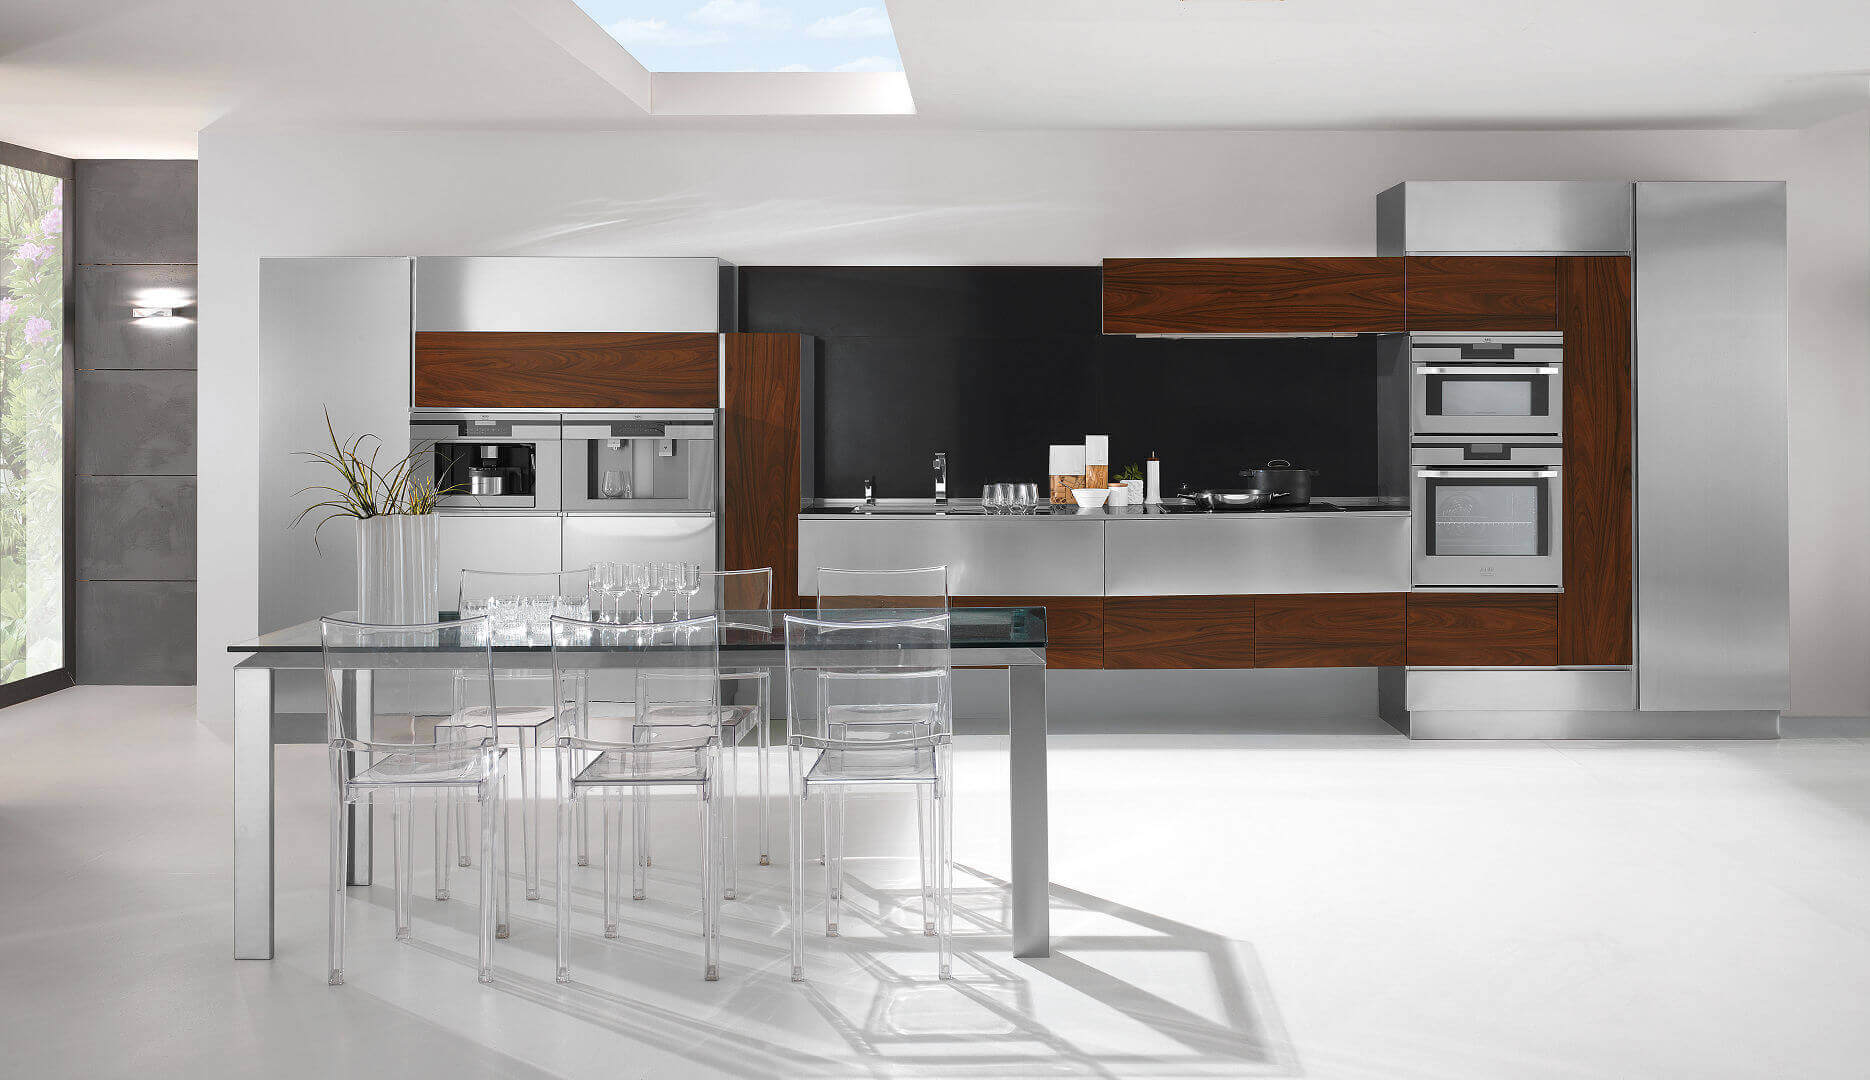 Arca Cucine Italy - Domestic stainless steel kitchens - 24 - Retro - 0005